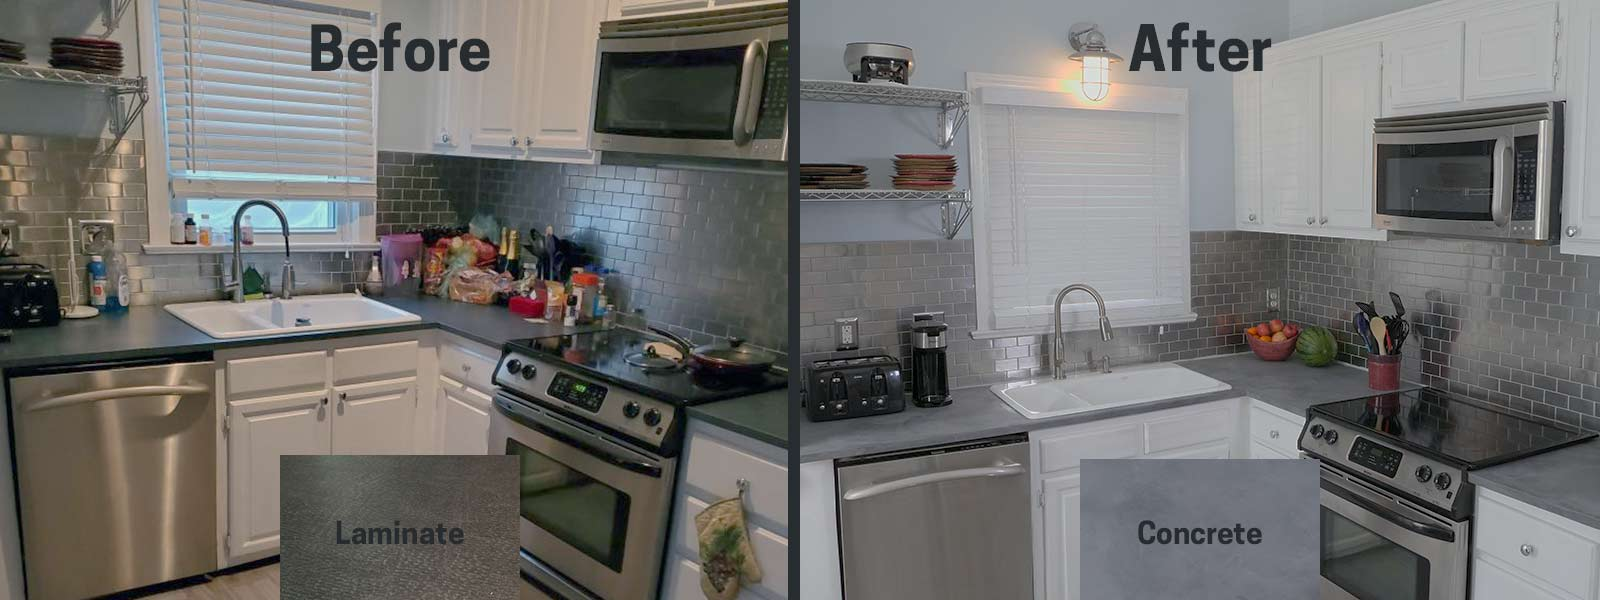 before after concrete countertop paint gray white kitchen